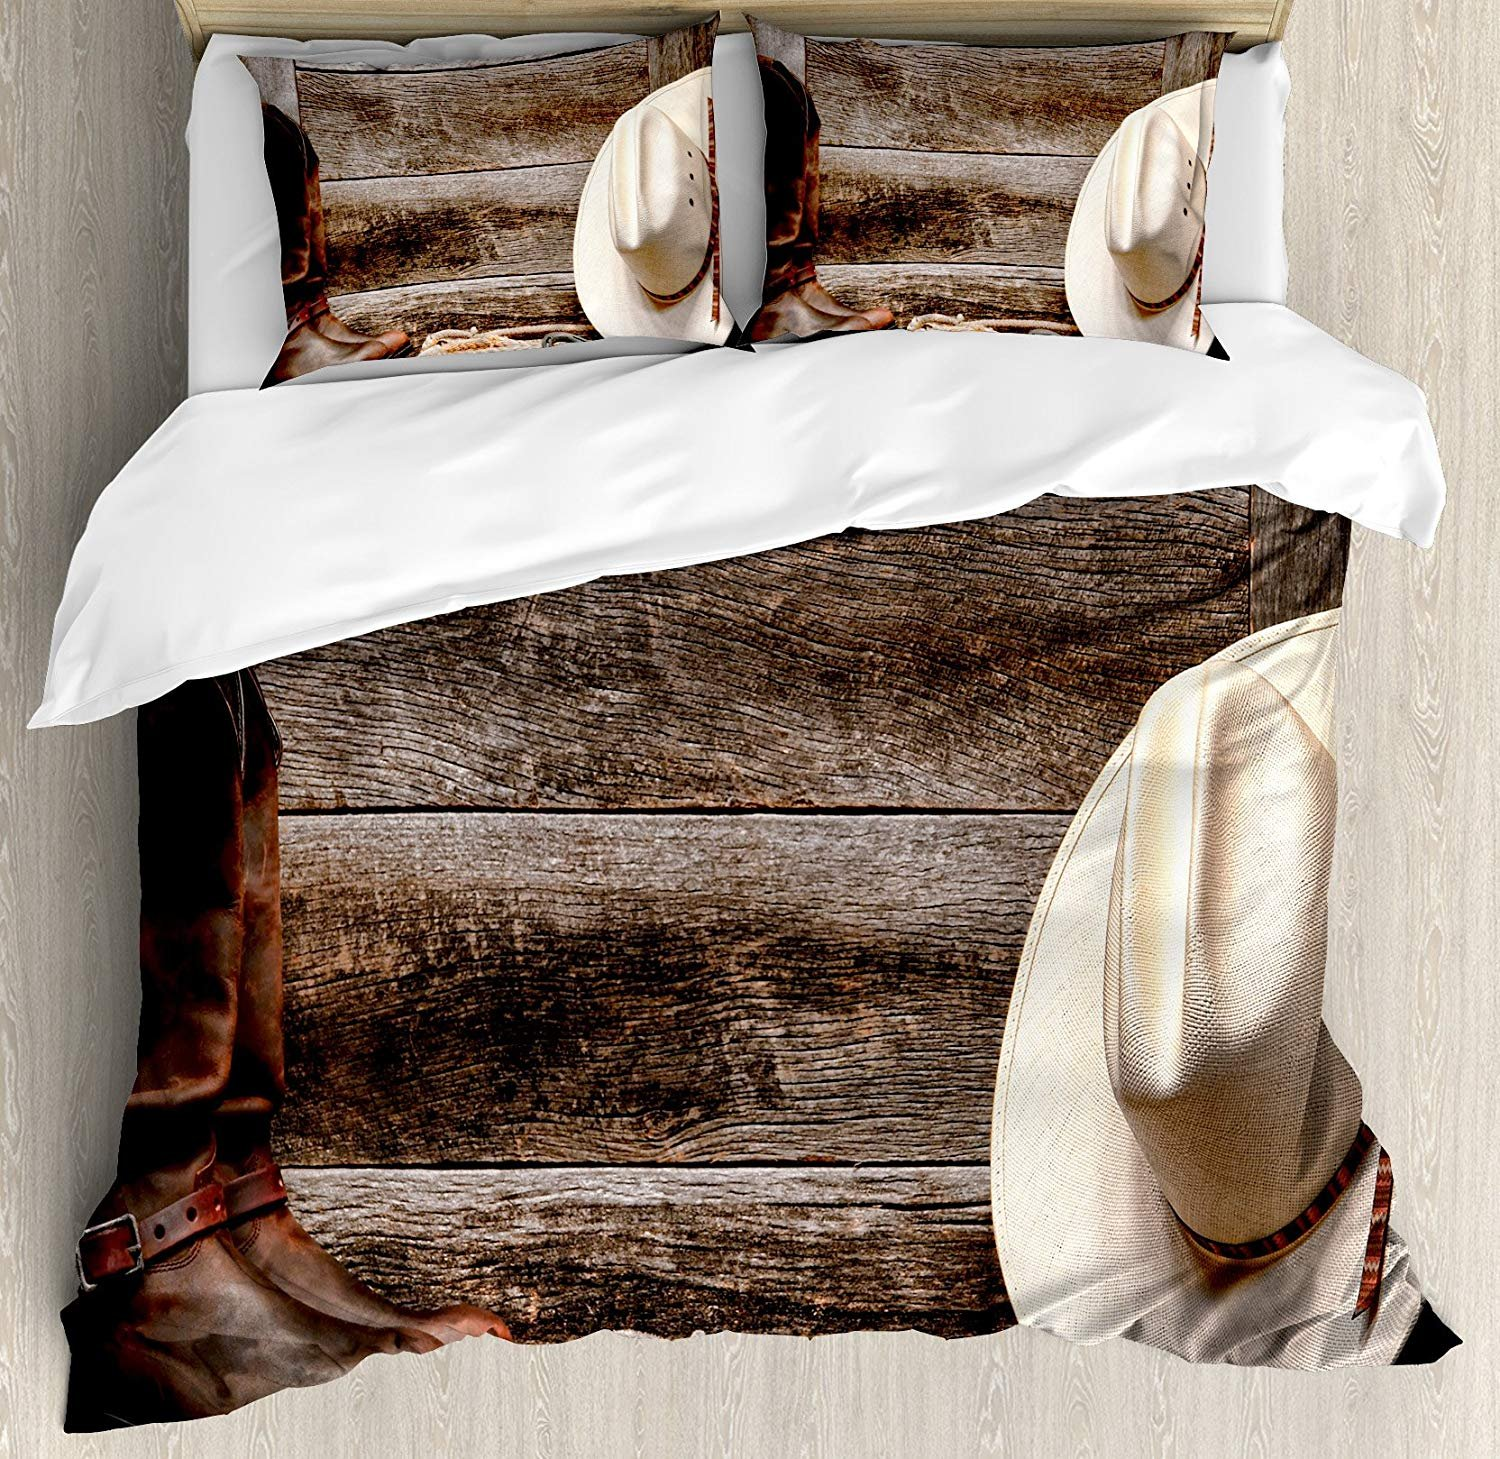 Funy Decor Western Bedding Set, American West Rodeo White Straw Cowboy Hat with Lariat Leather Boots on Rustic Barn Wood, 4 Piece Duvet Cover Set Bedspread for Childrens/Kids/Teens/Adults Twin Size